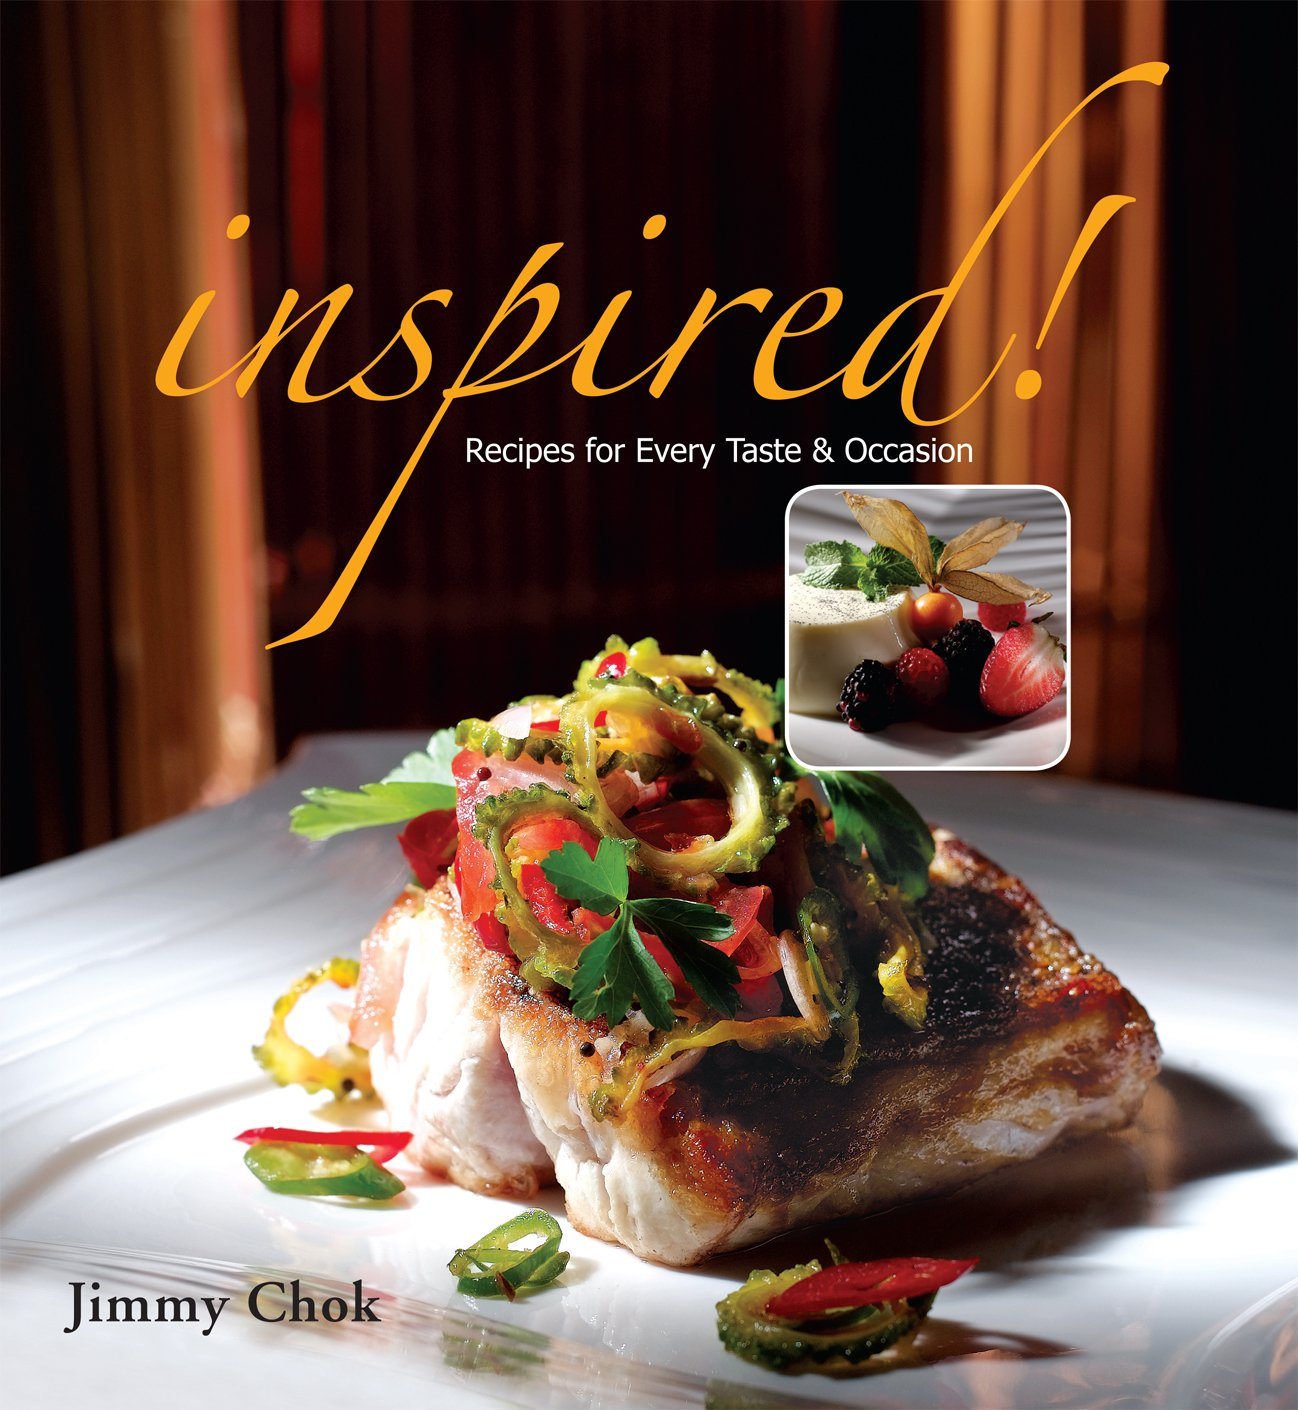 Recipes for every taste